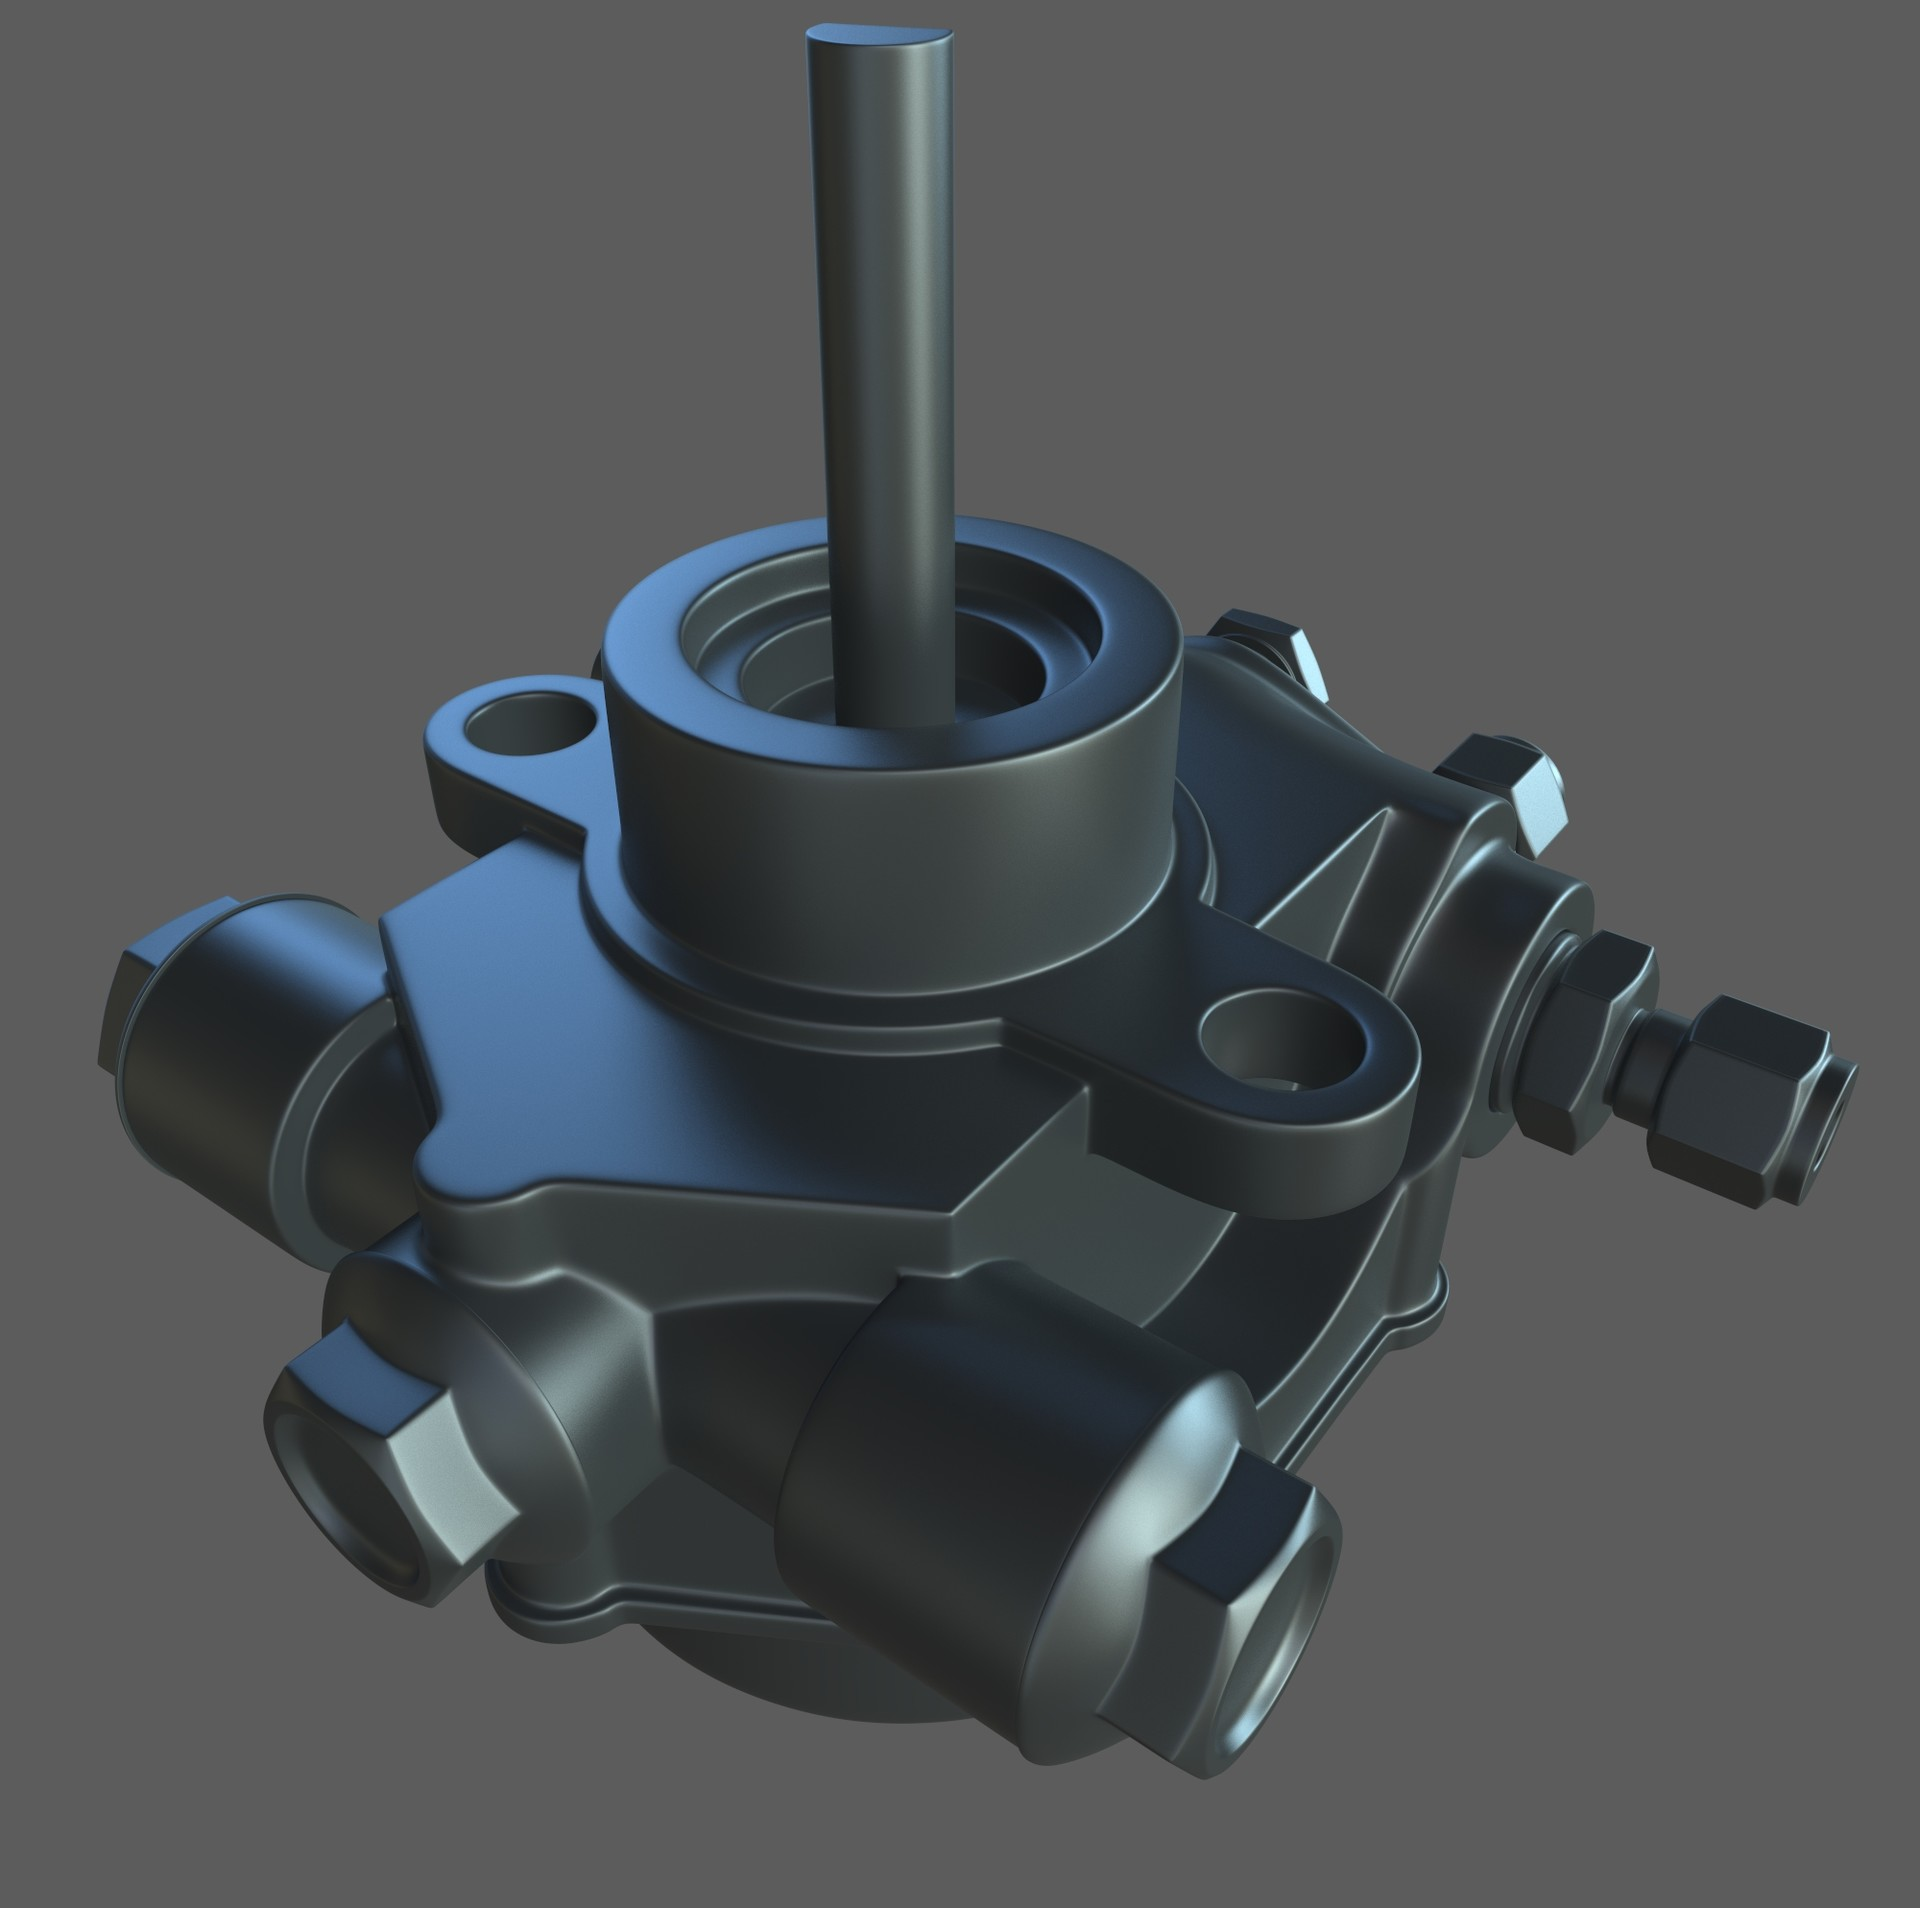 Hard Surface Study - Fuel Pump